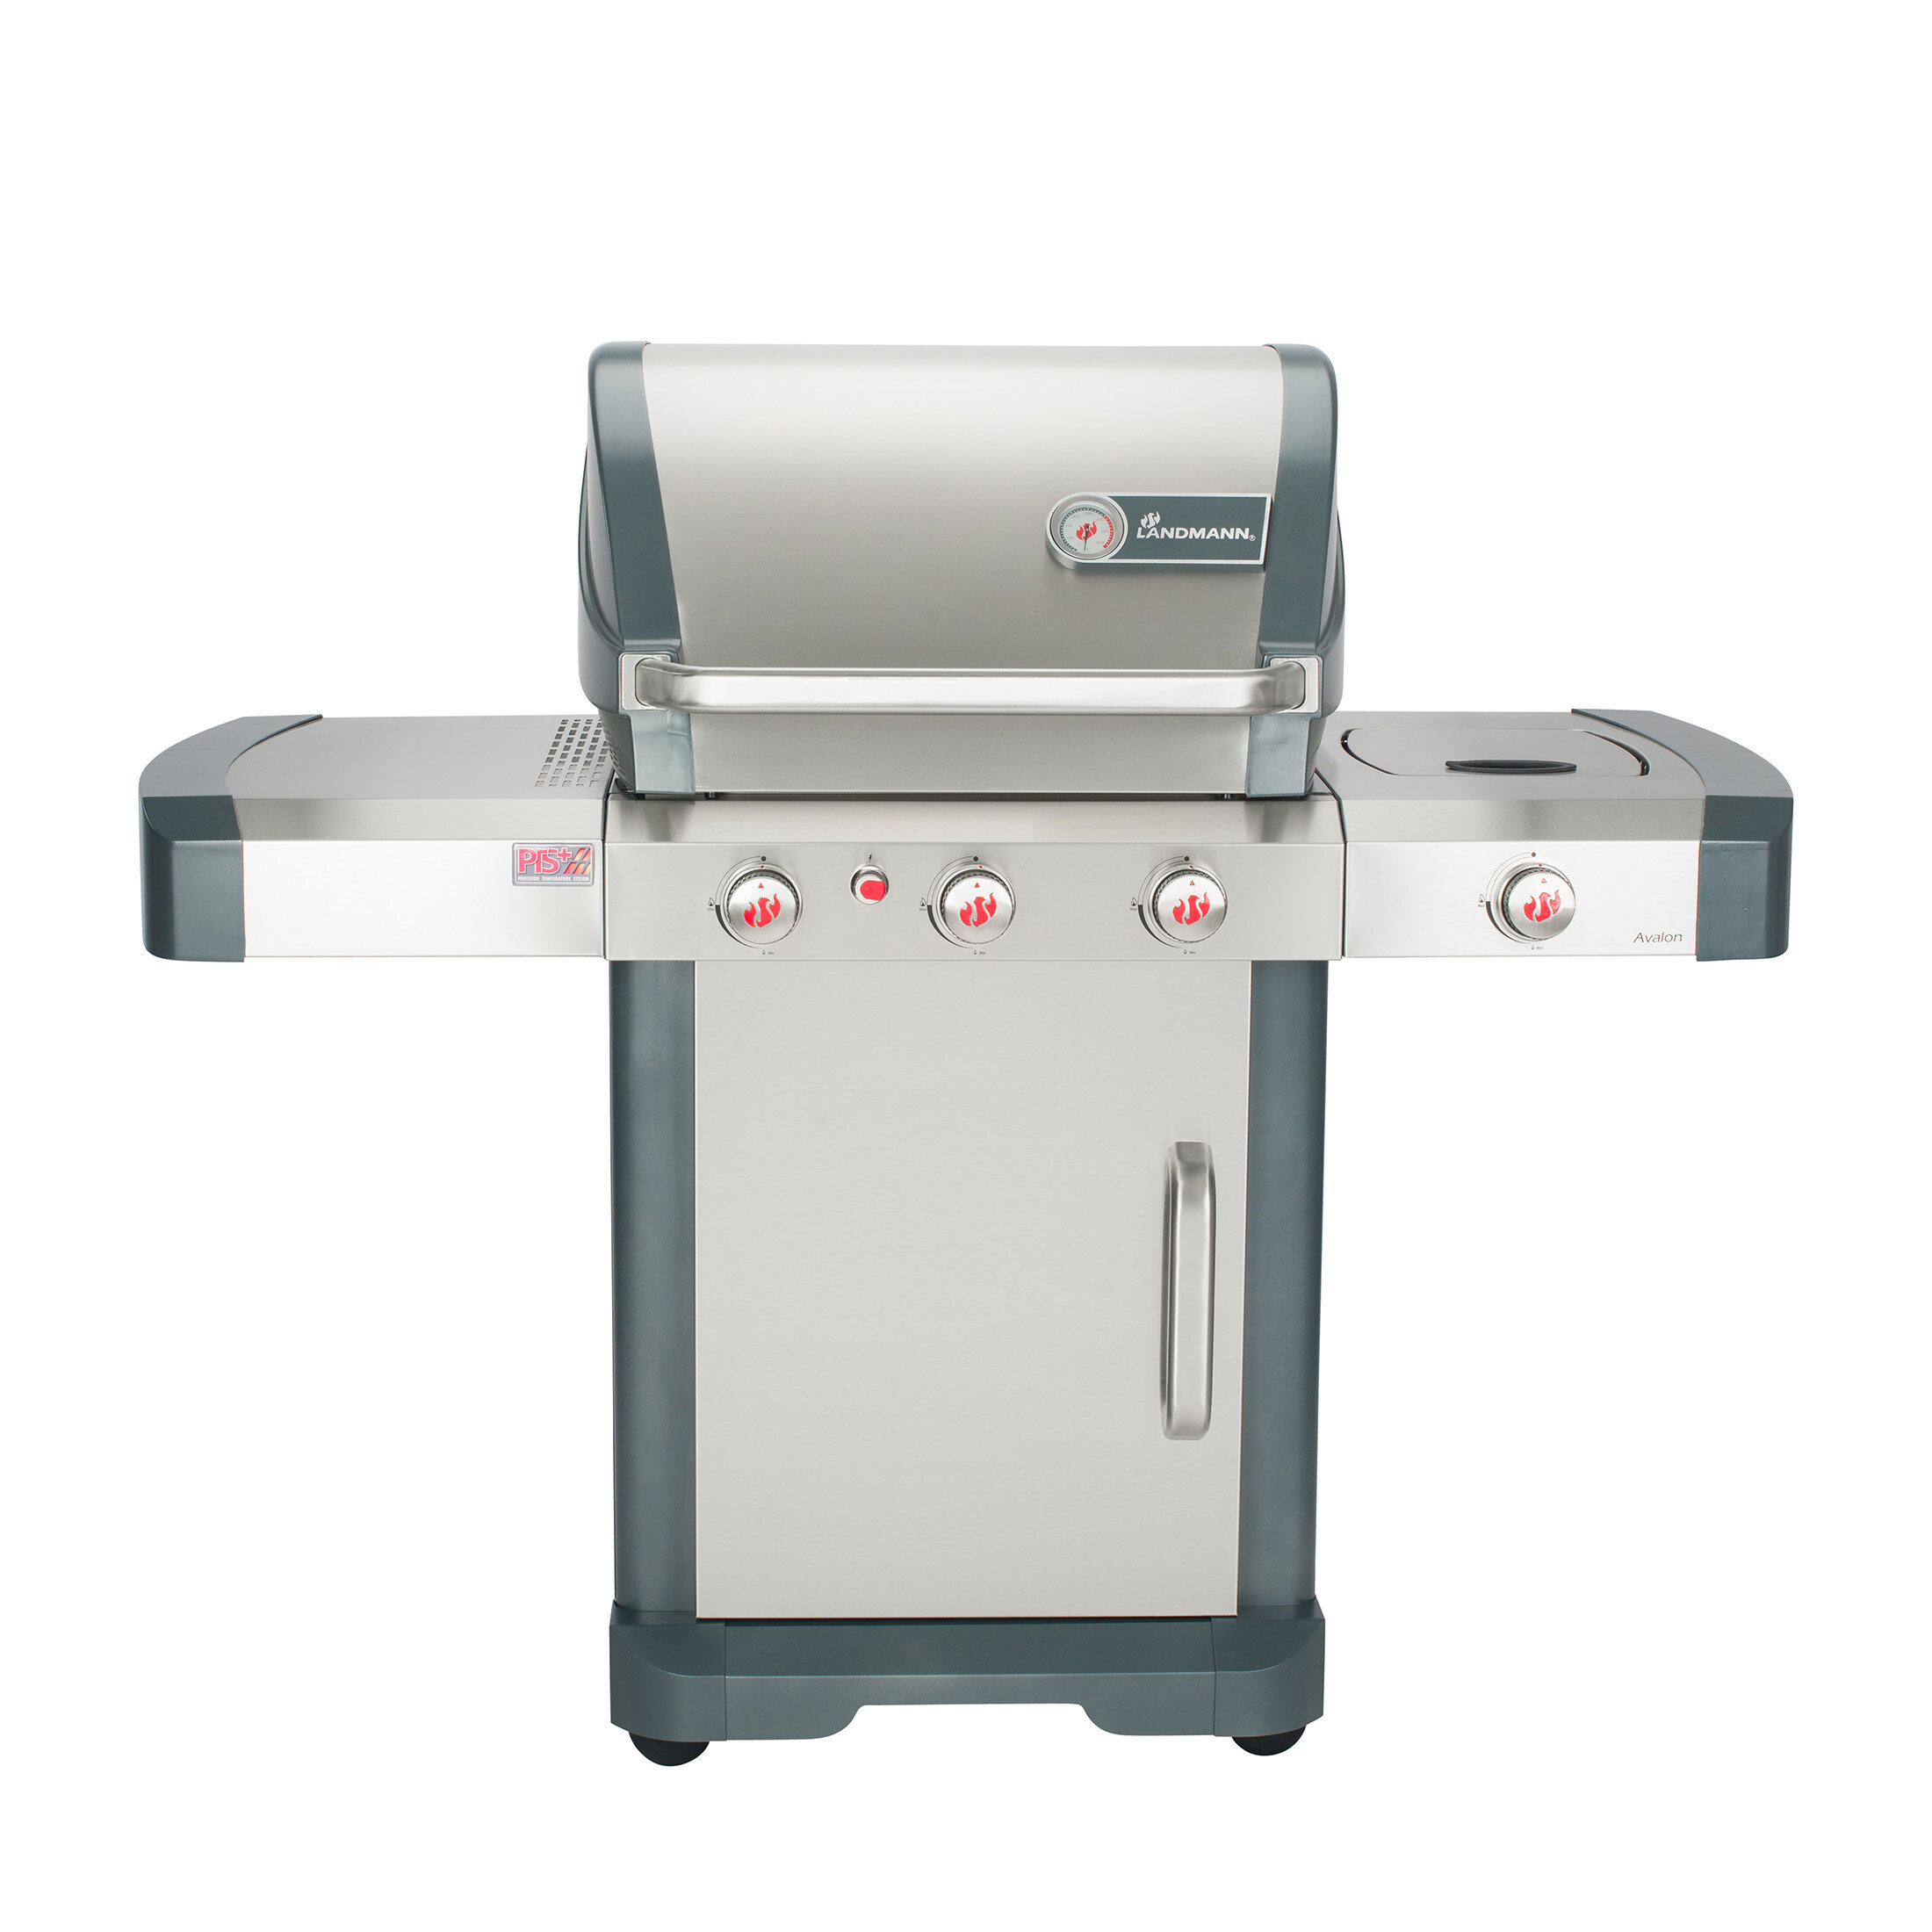 Avalon 5-Burner Convertible Gas Grill with Side Burner